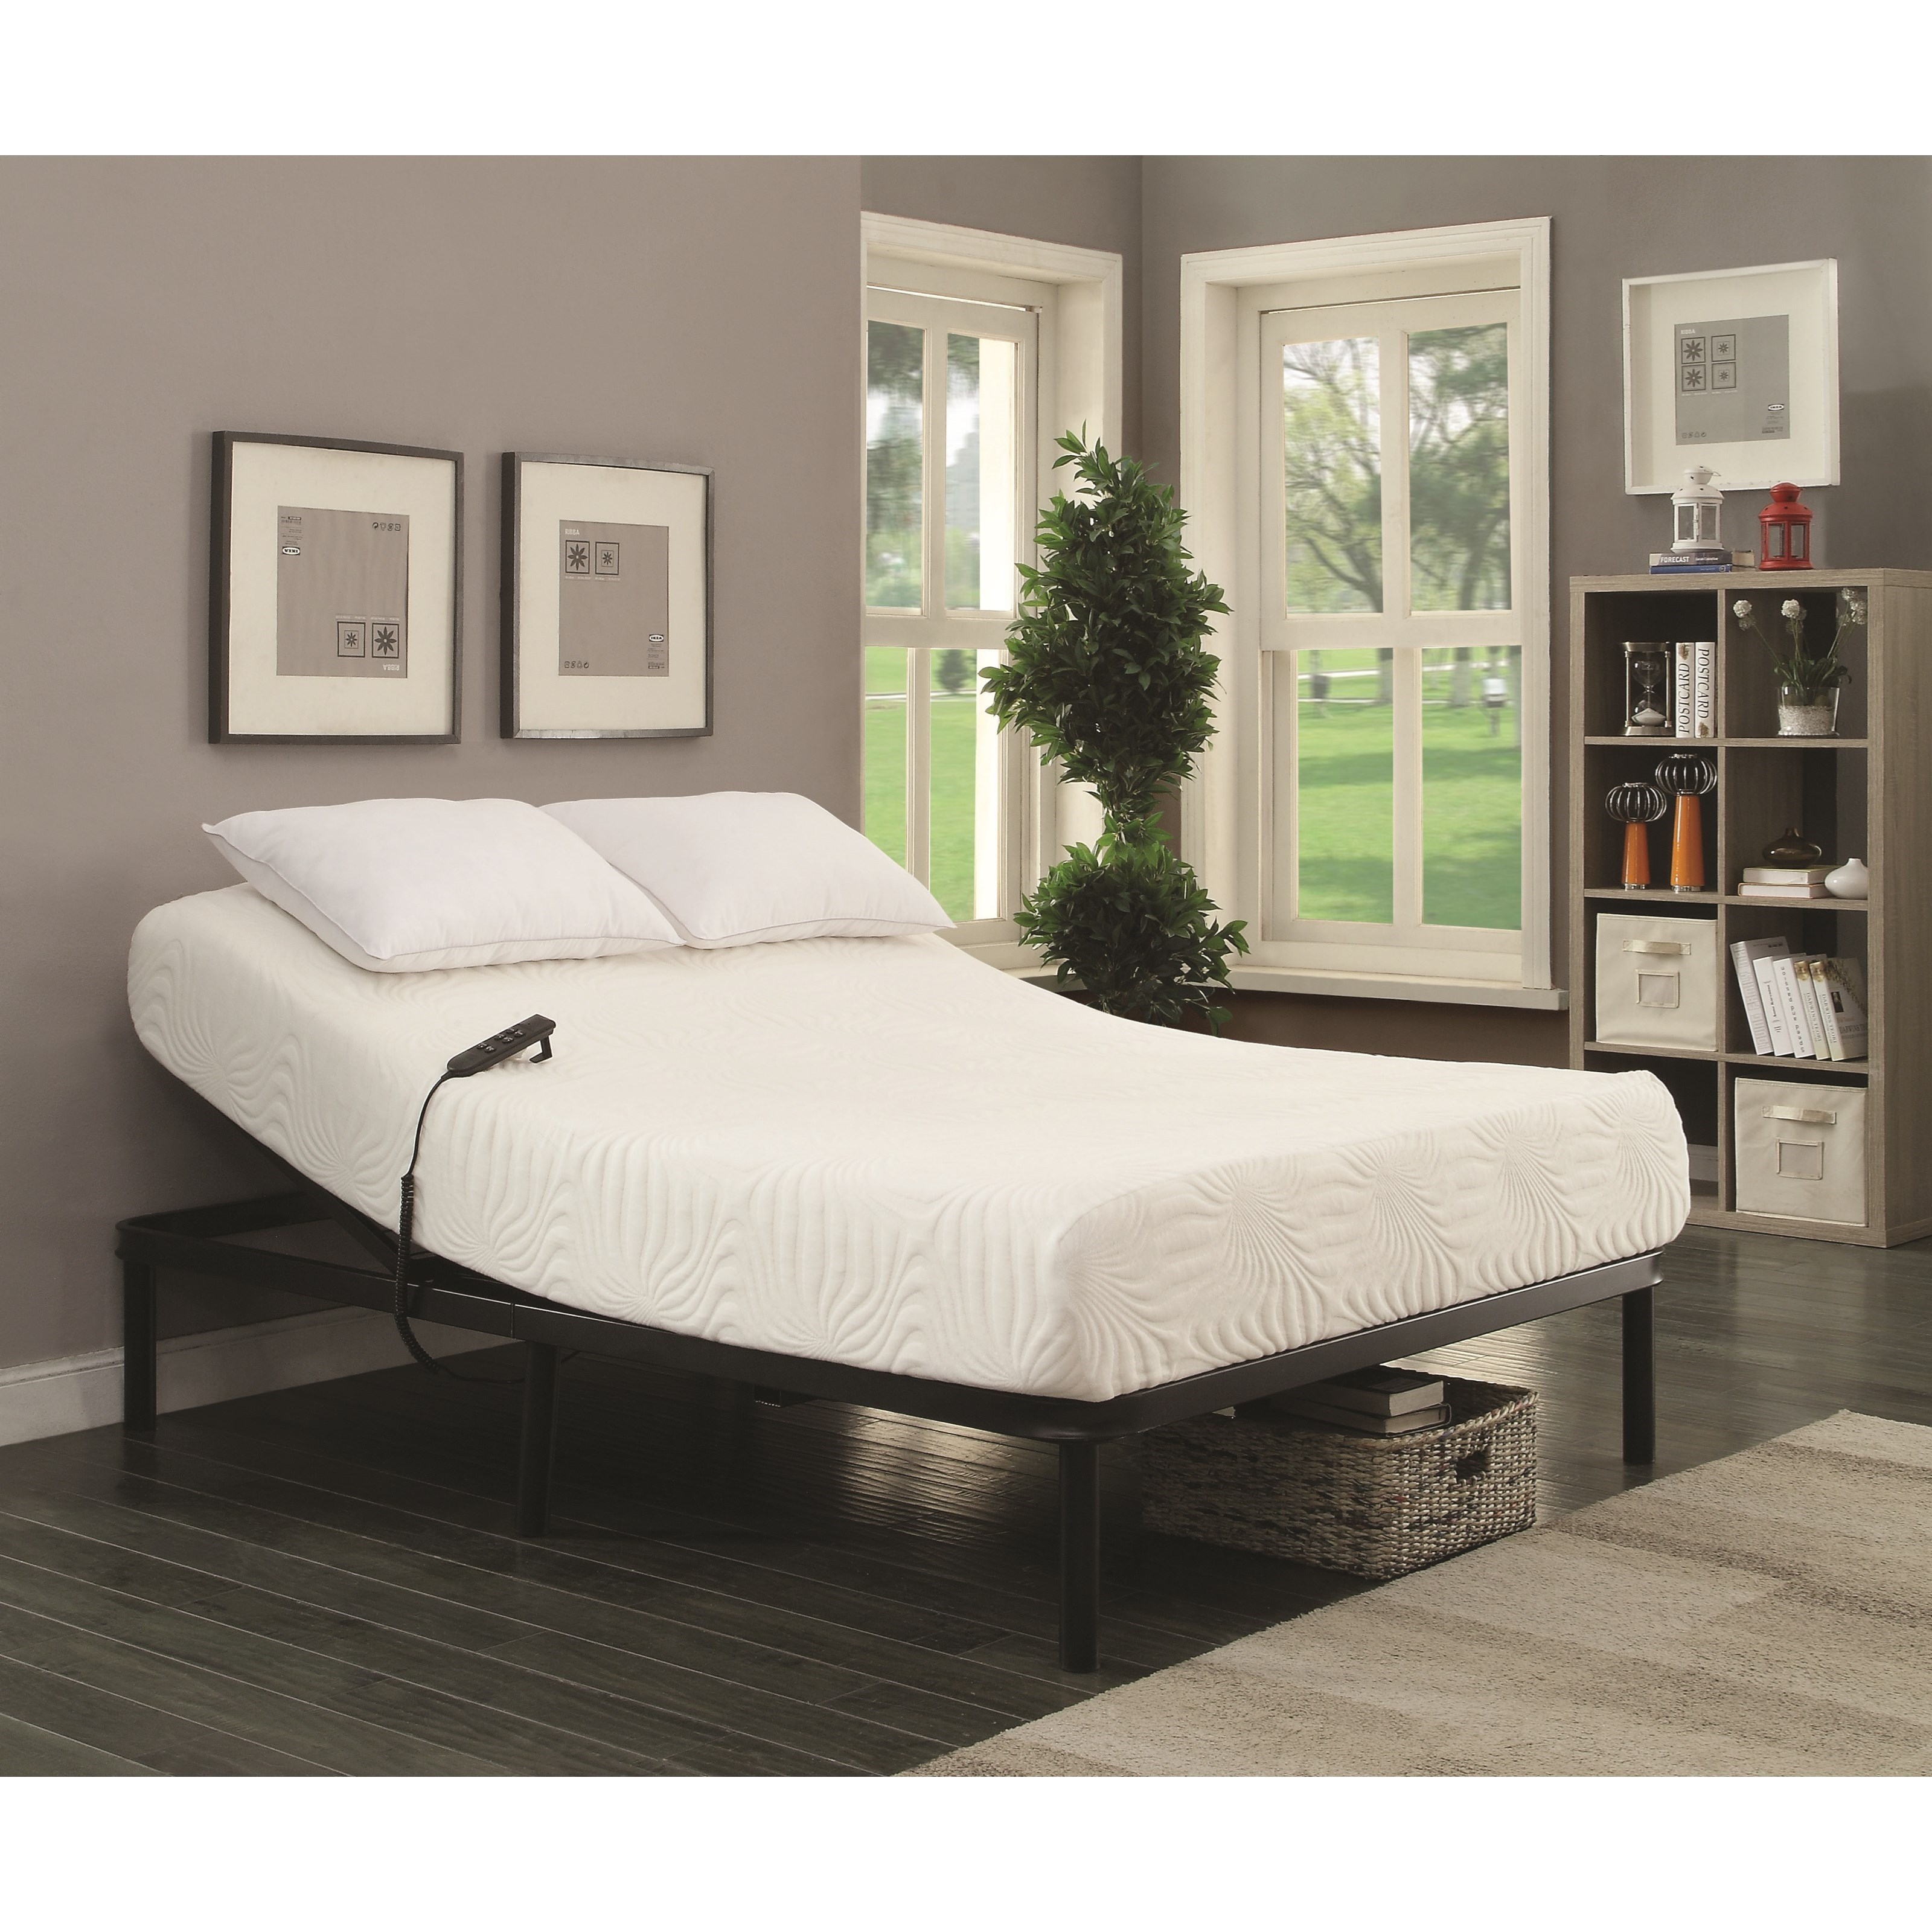 Adjustable Bed Base Full : Coaster stanhope adjustable bed base f full electric